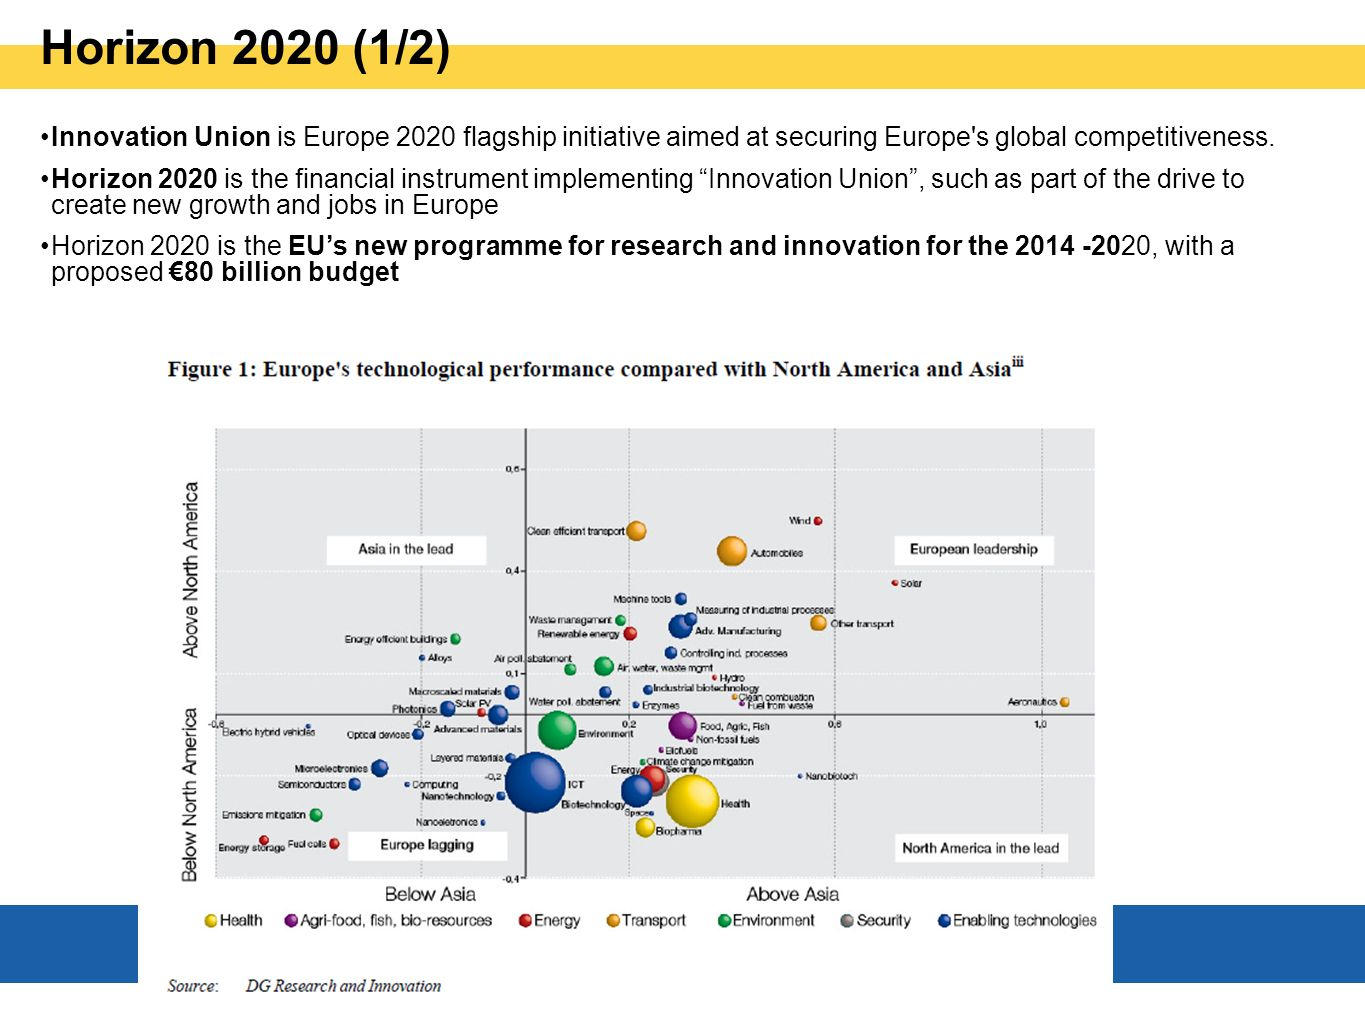 Horizon 2020 (1/2) Innovation Union is Europe 2020 flagship initiative aimed at securing Europe s global competitiveness.